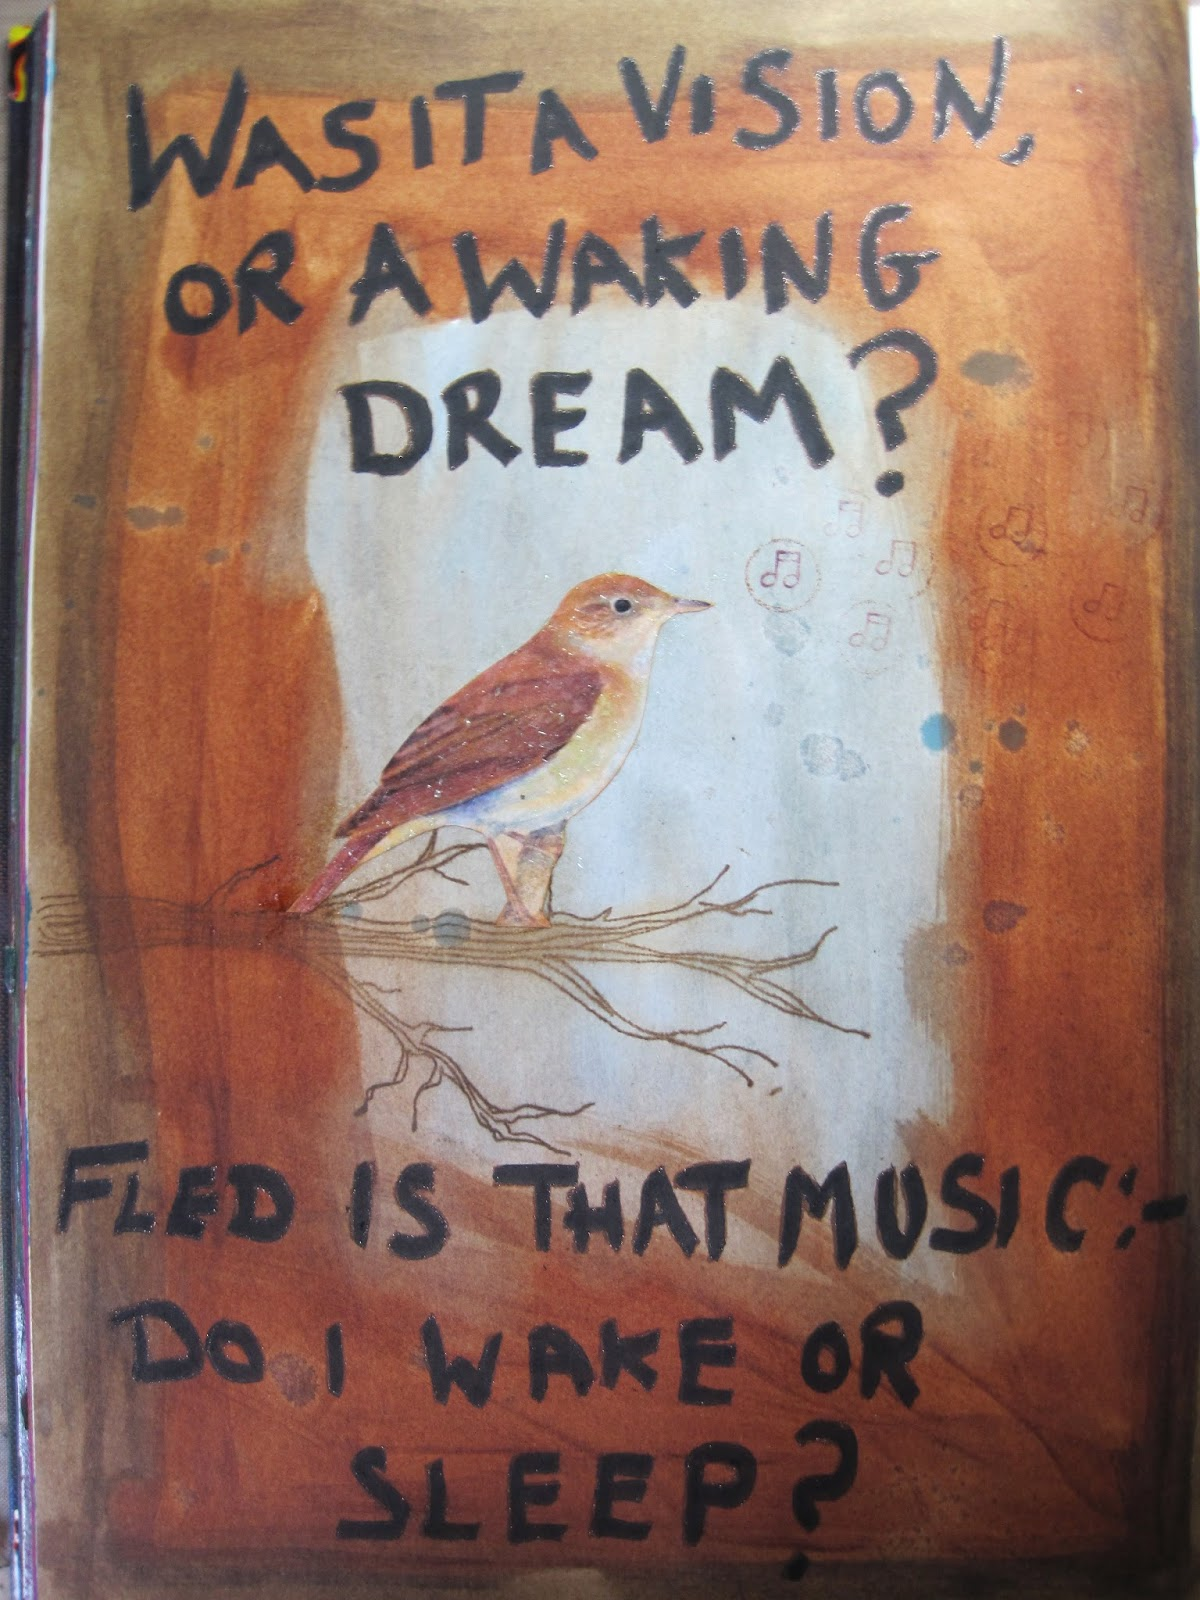 Music - Ode to a Nightingale